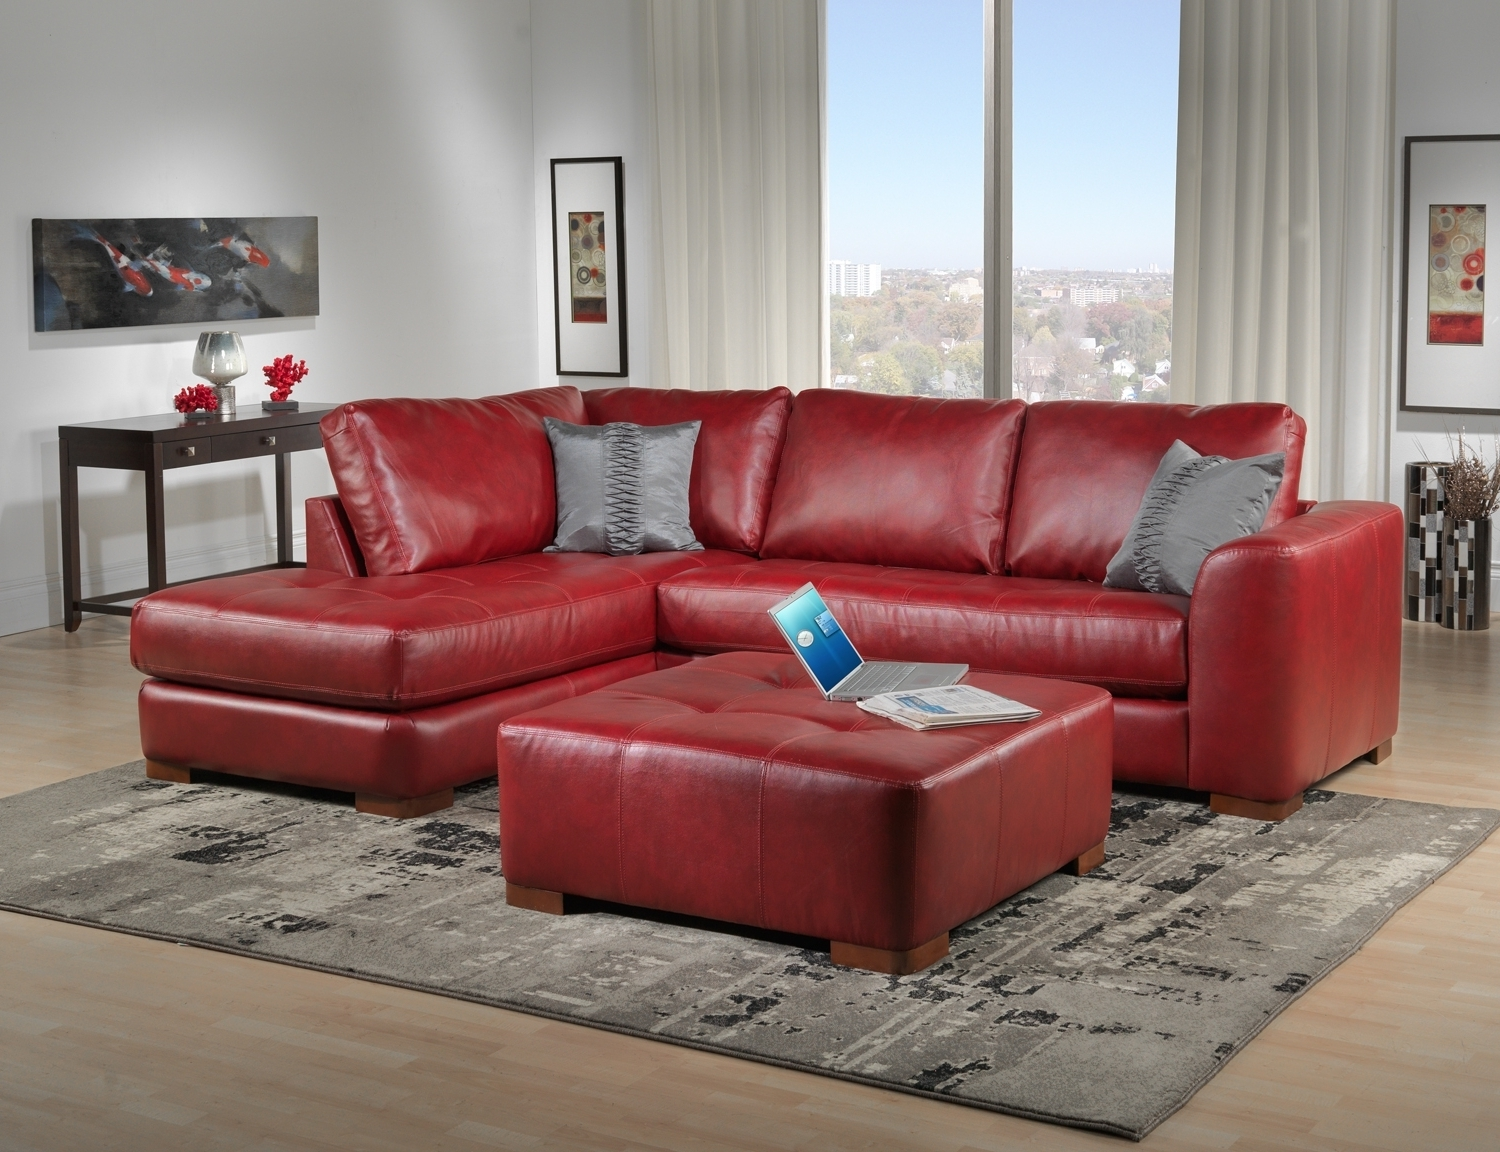 Red Inside Red Leather Sectional Couches (View 10 of 20)